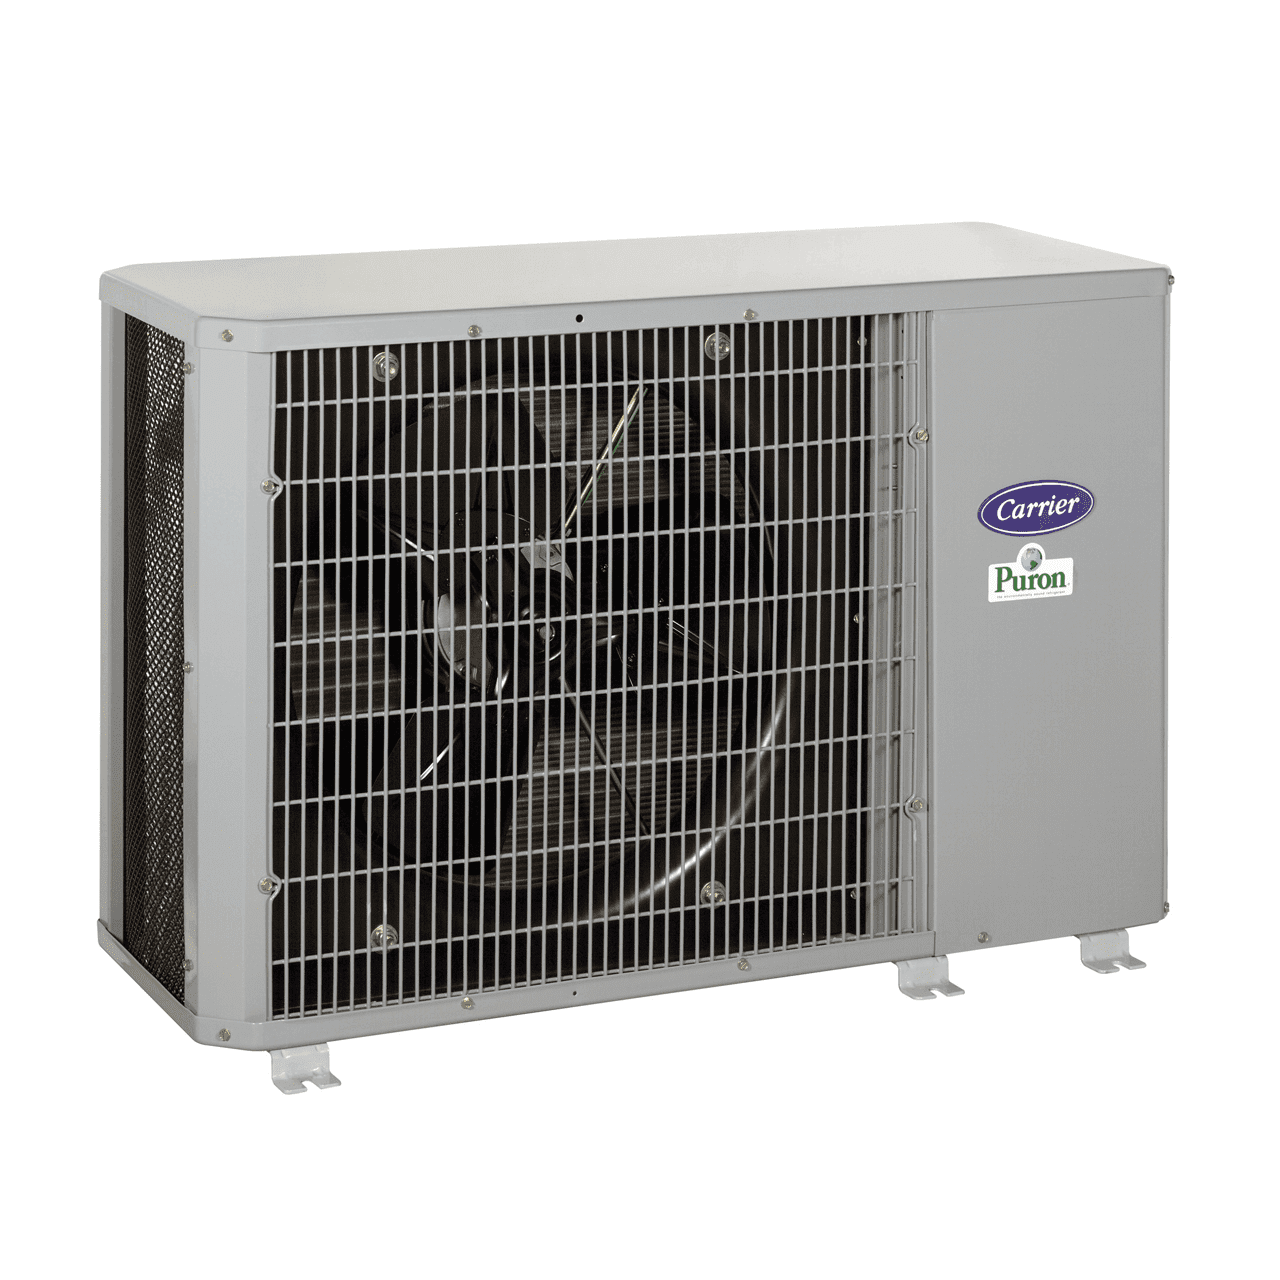 Performance™ 13 Heat Pump Model: 38QRR